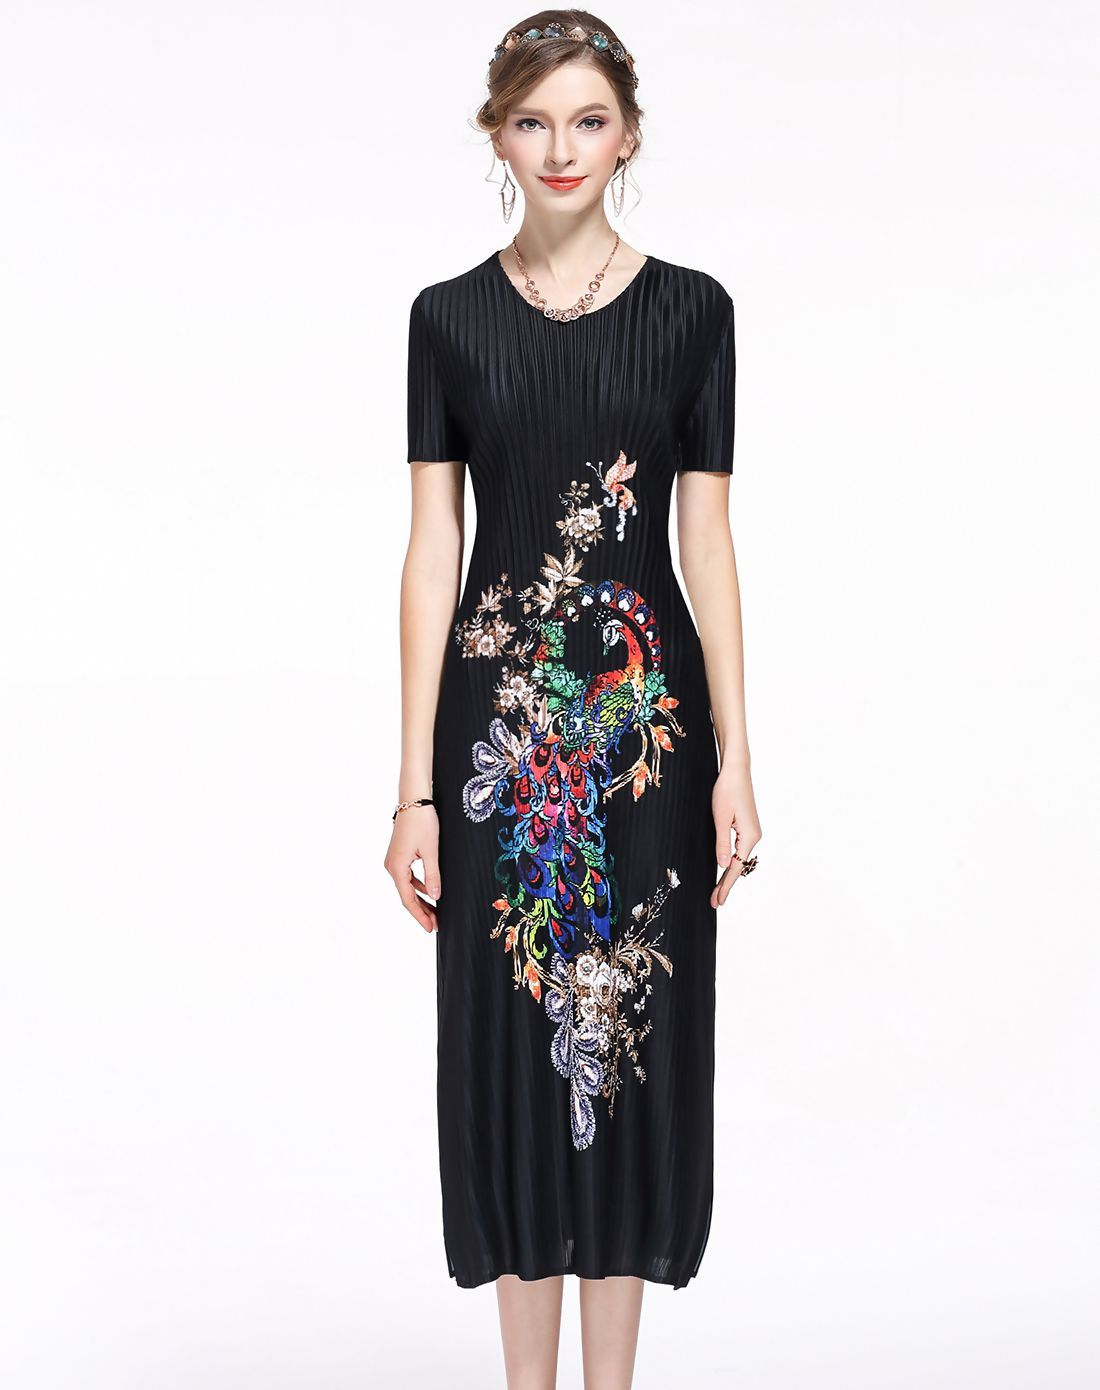 4cd4a5d665b5  AdoreWe  VIPme Sheath Dresses❤️Designer DAIPYA Black Chiffon Vintage  Folral Embroidery Slim Fit